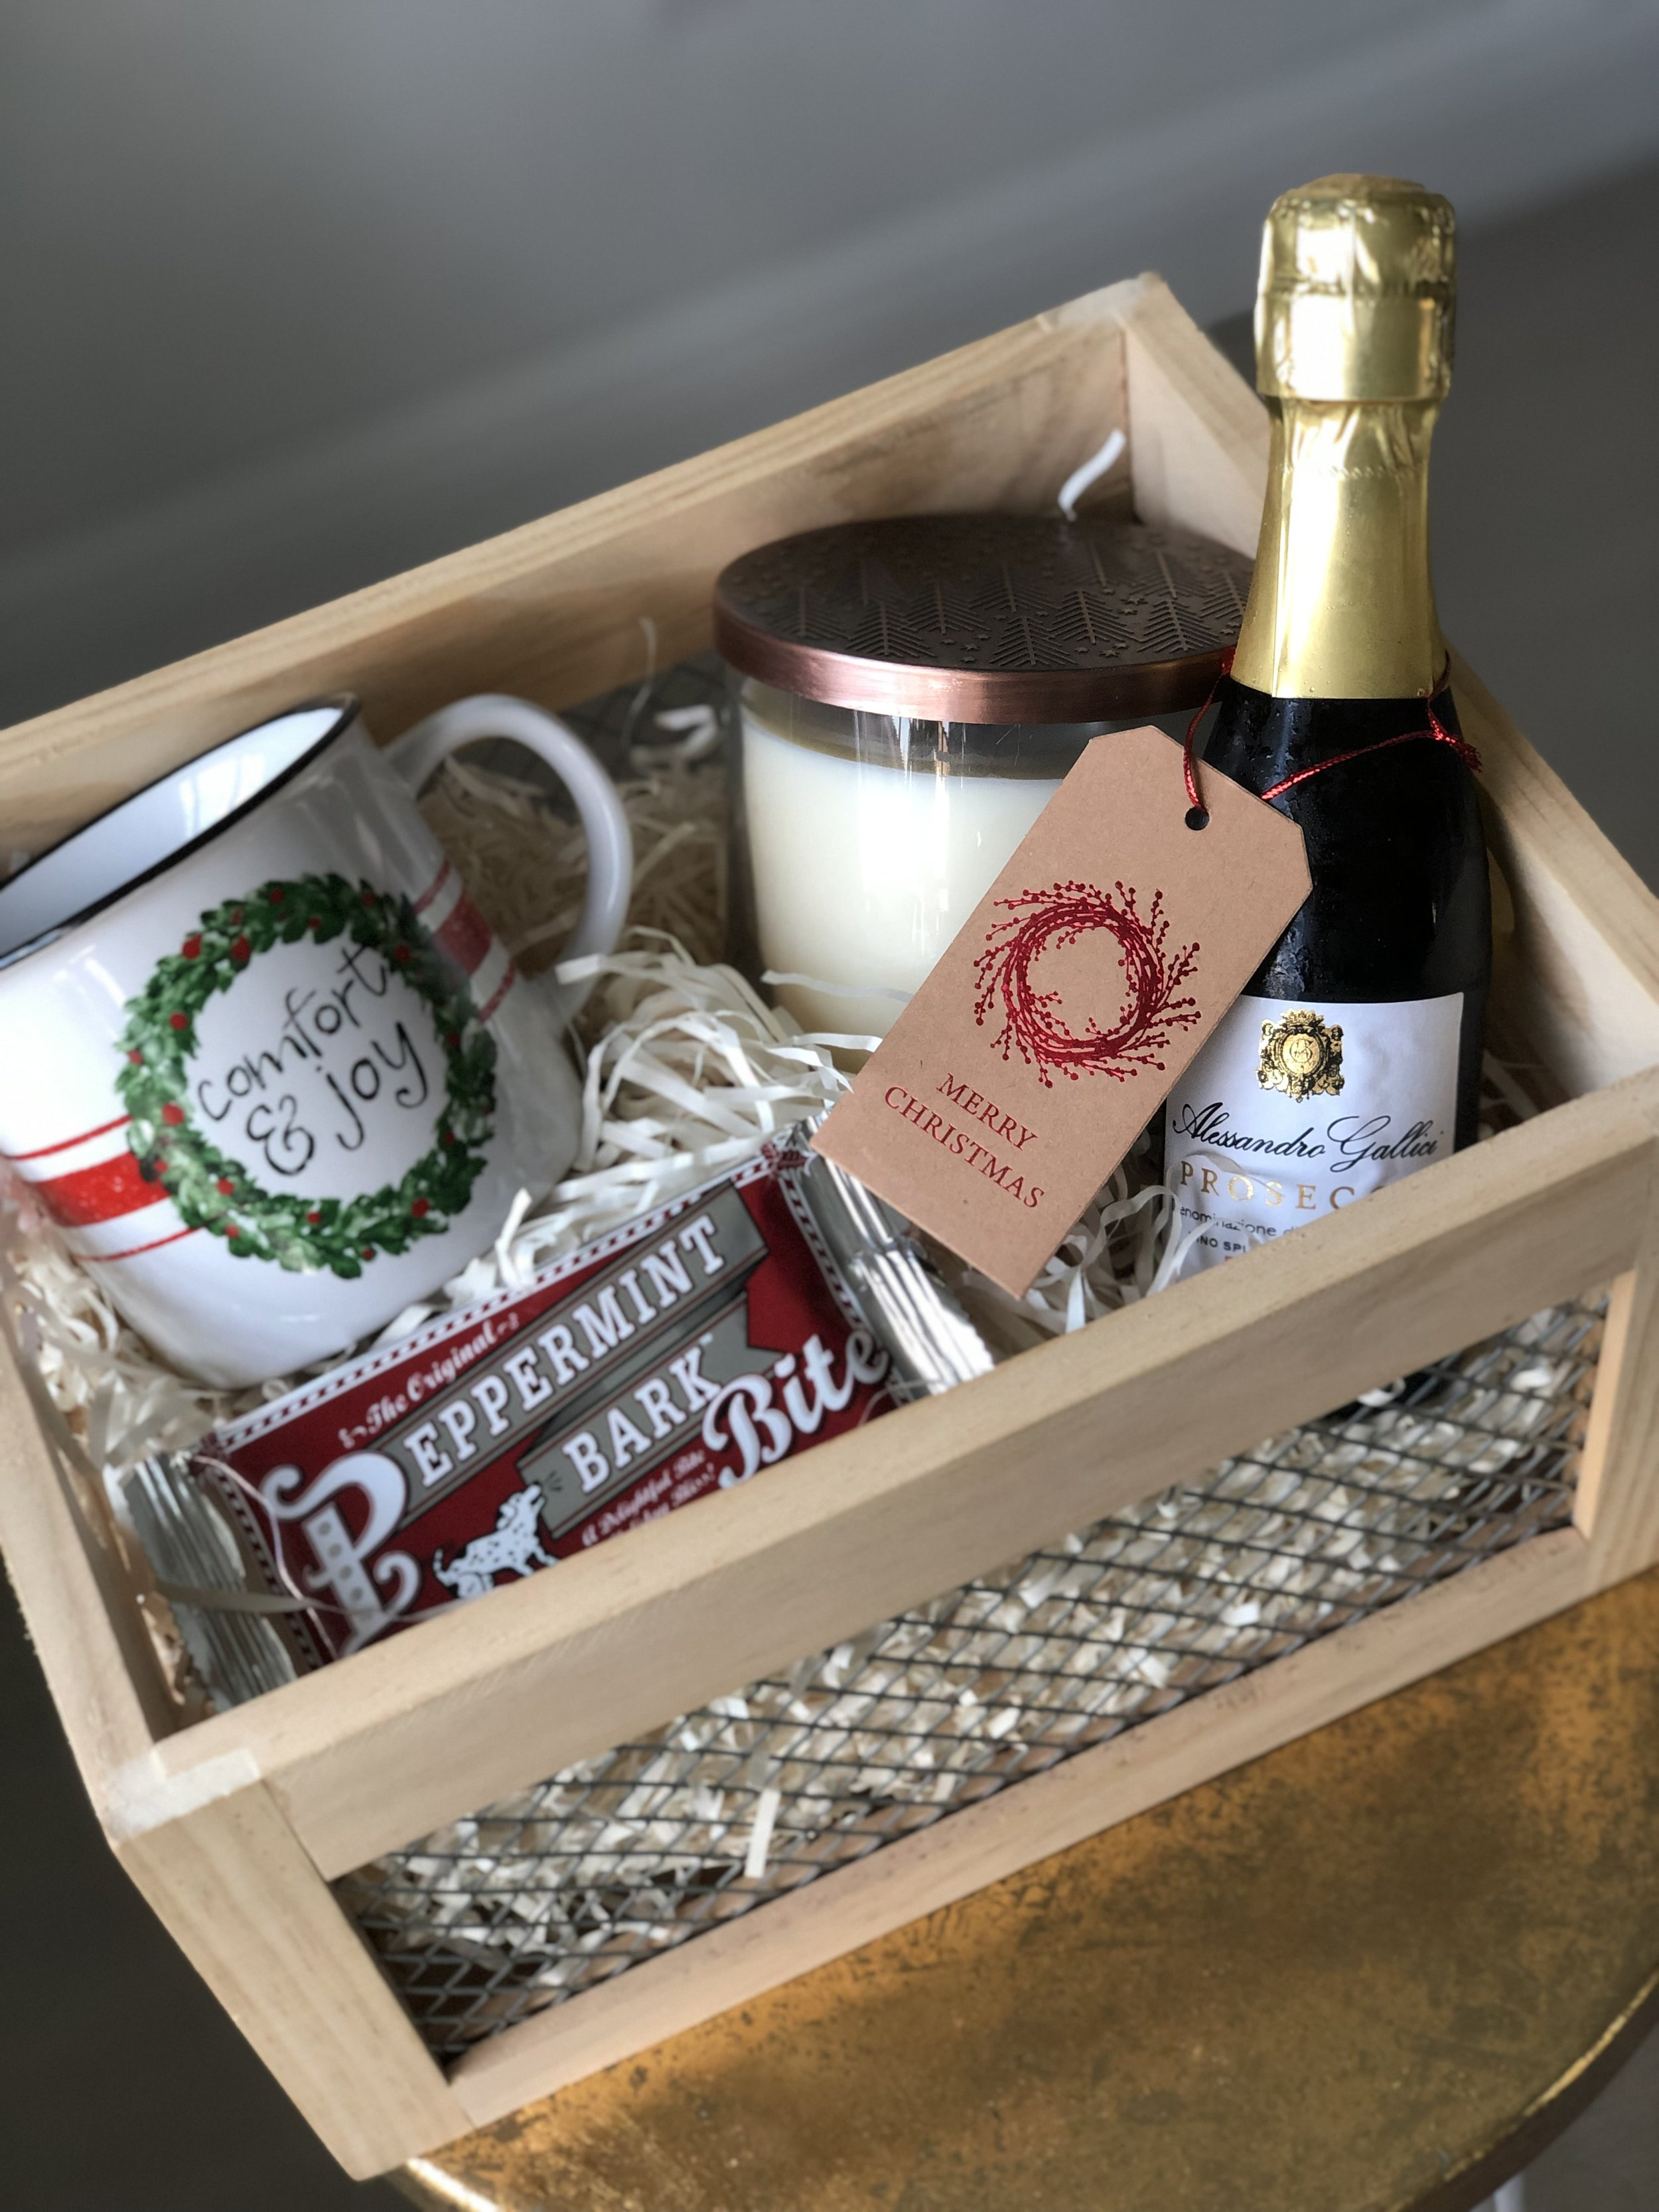 Gifts - Gifts for all occasions are also available. We can take care of finding the right items for house warming, wedding, new baby, holiday, or just because gift. You can also customize your gift by adding flowers, wine, or candles to any of our boxes.